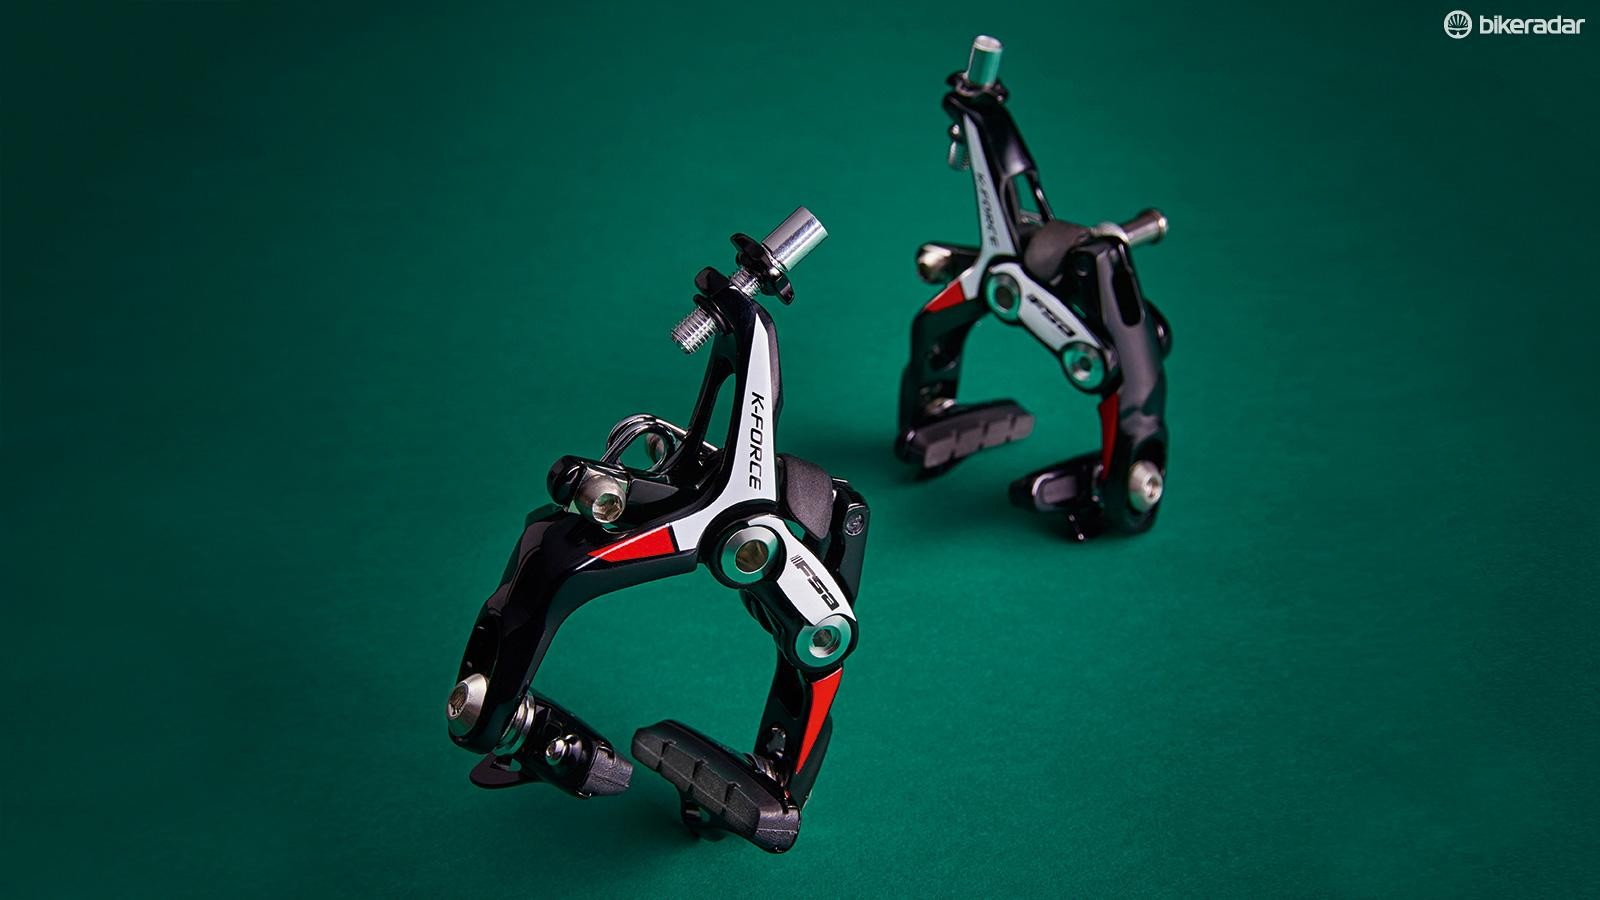 FSA's K-Force dual pivot brakes are taking the fight to Dura-Ace and Red